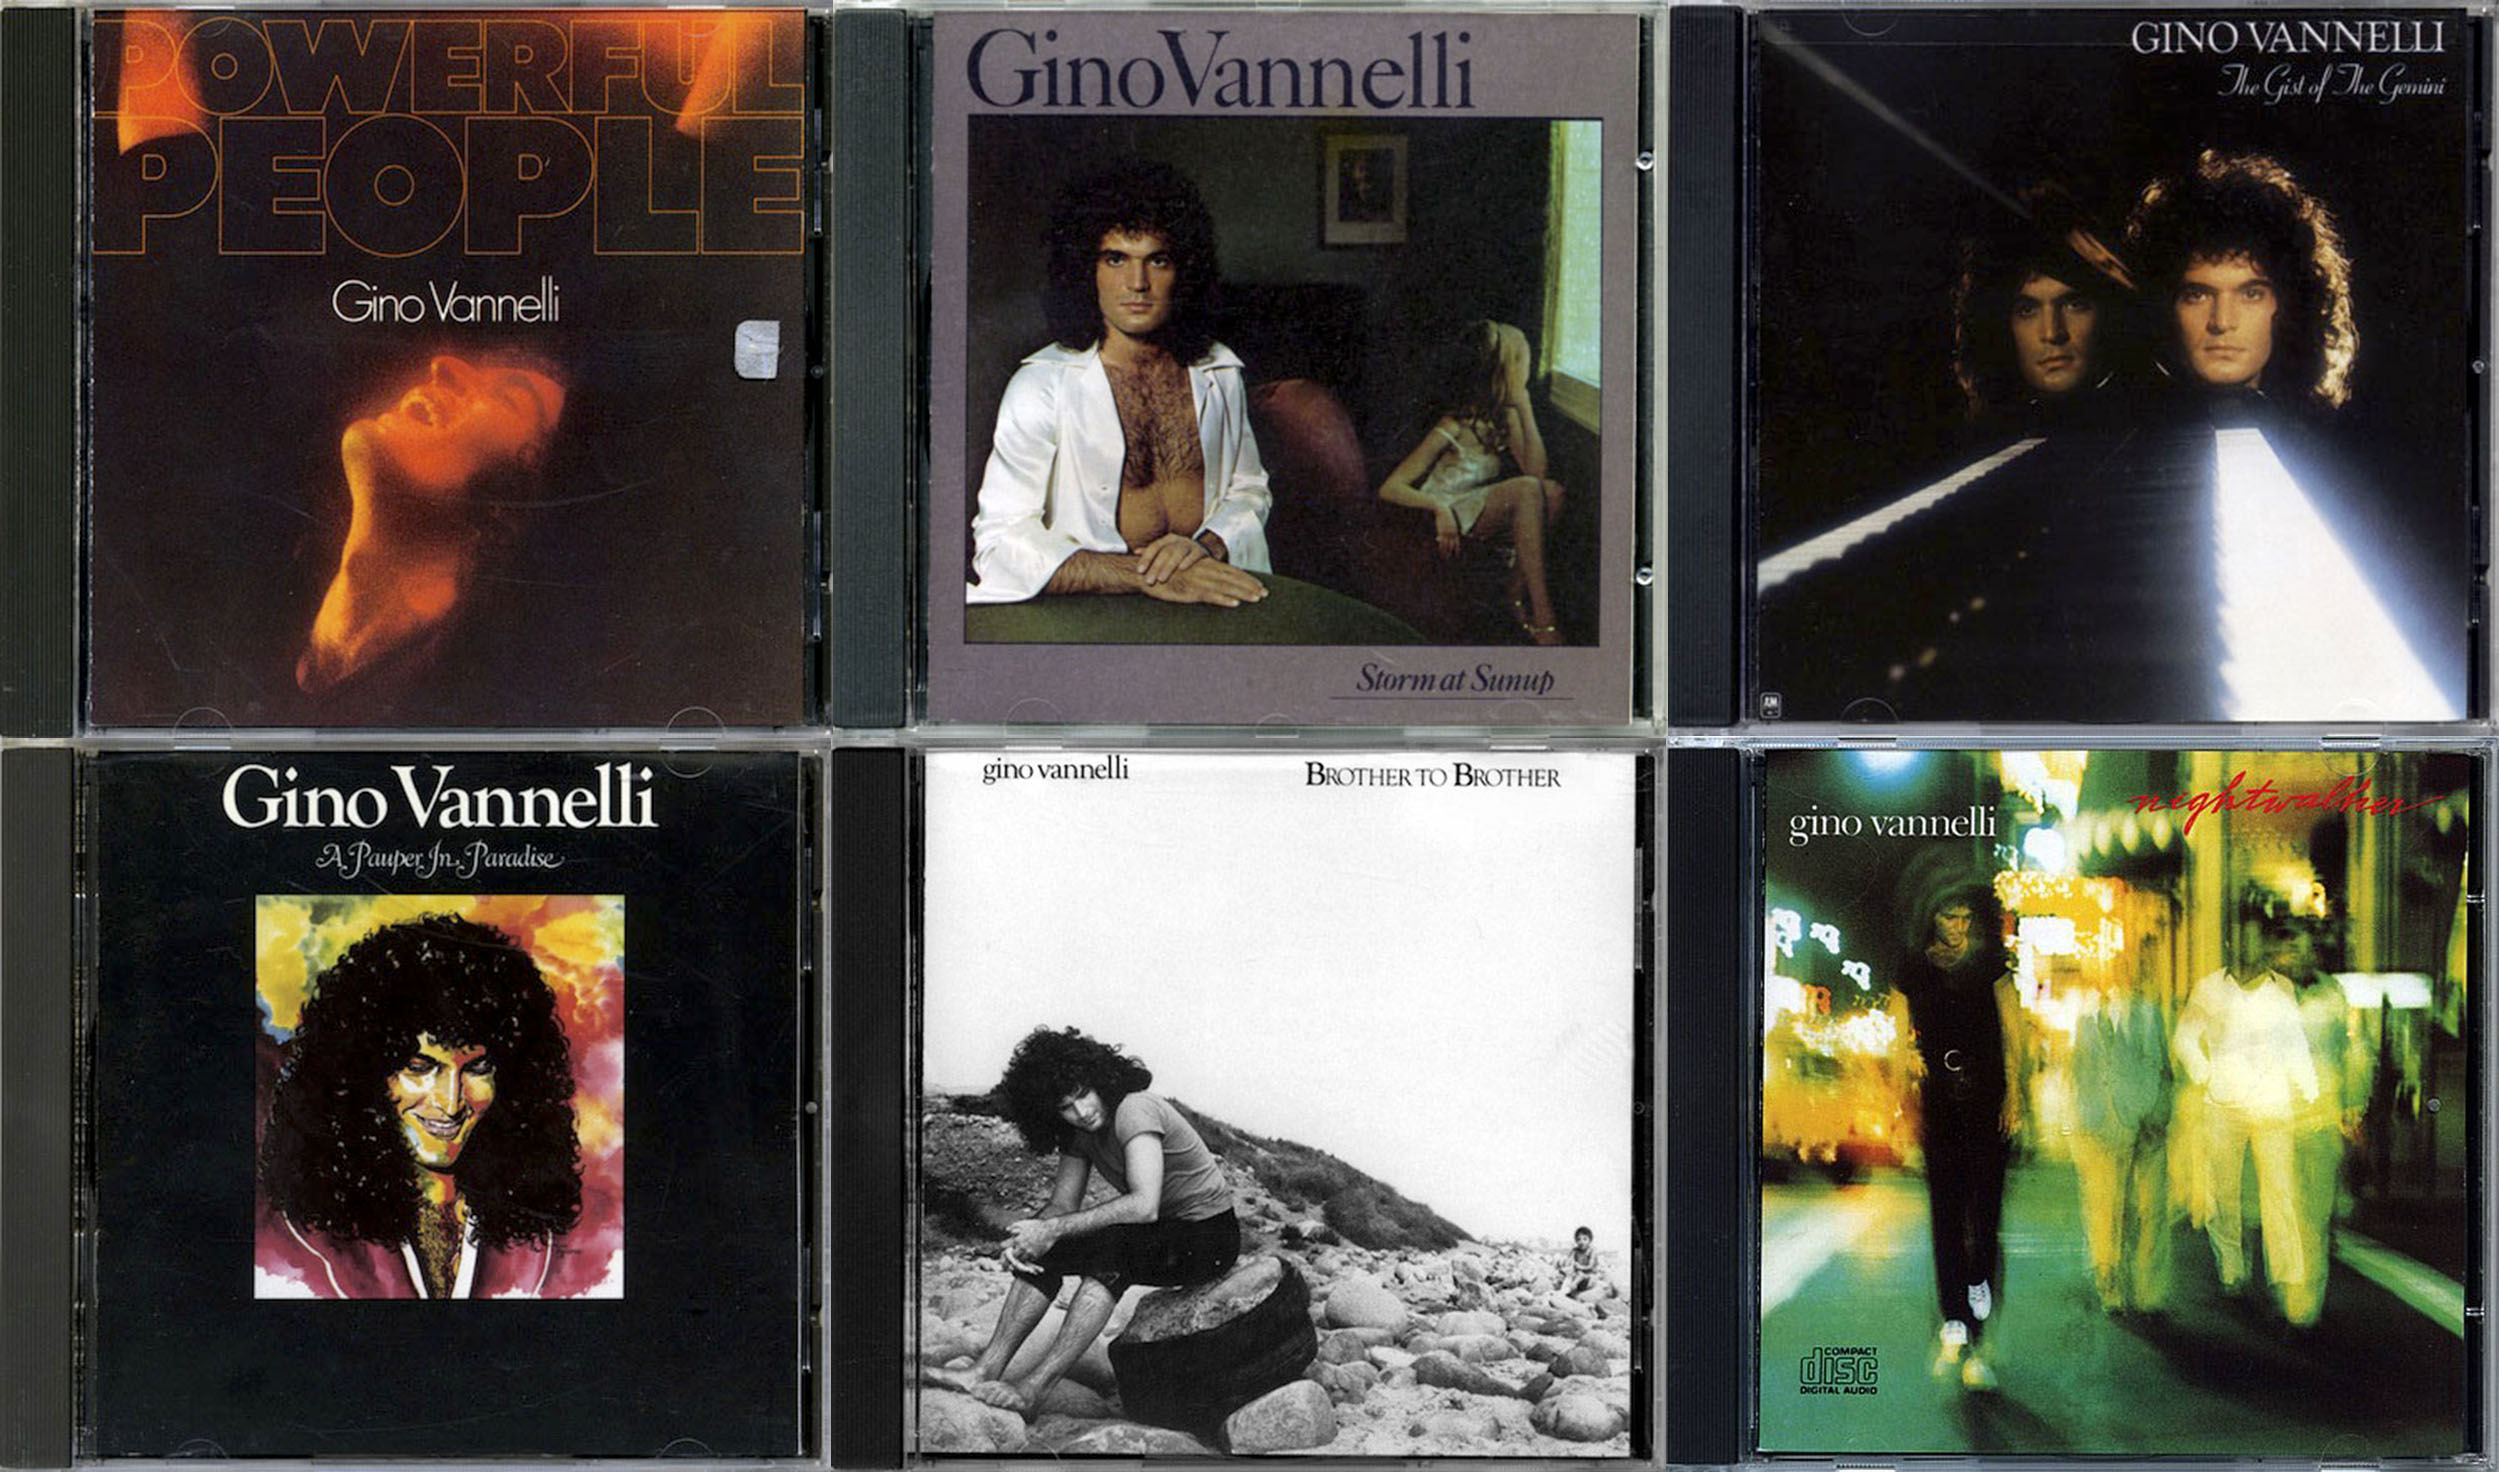 Gino Vannelli - Albums Collection 1974-1987 (7CD) Non-Remastered Releases [Combined Re-Up]